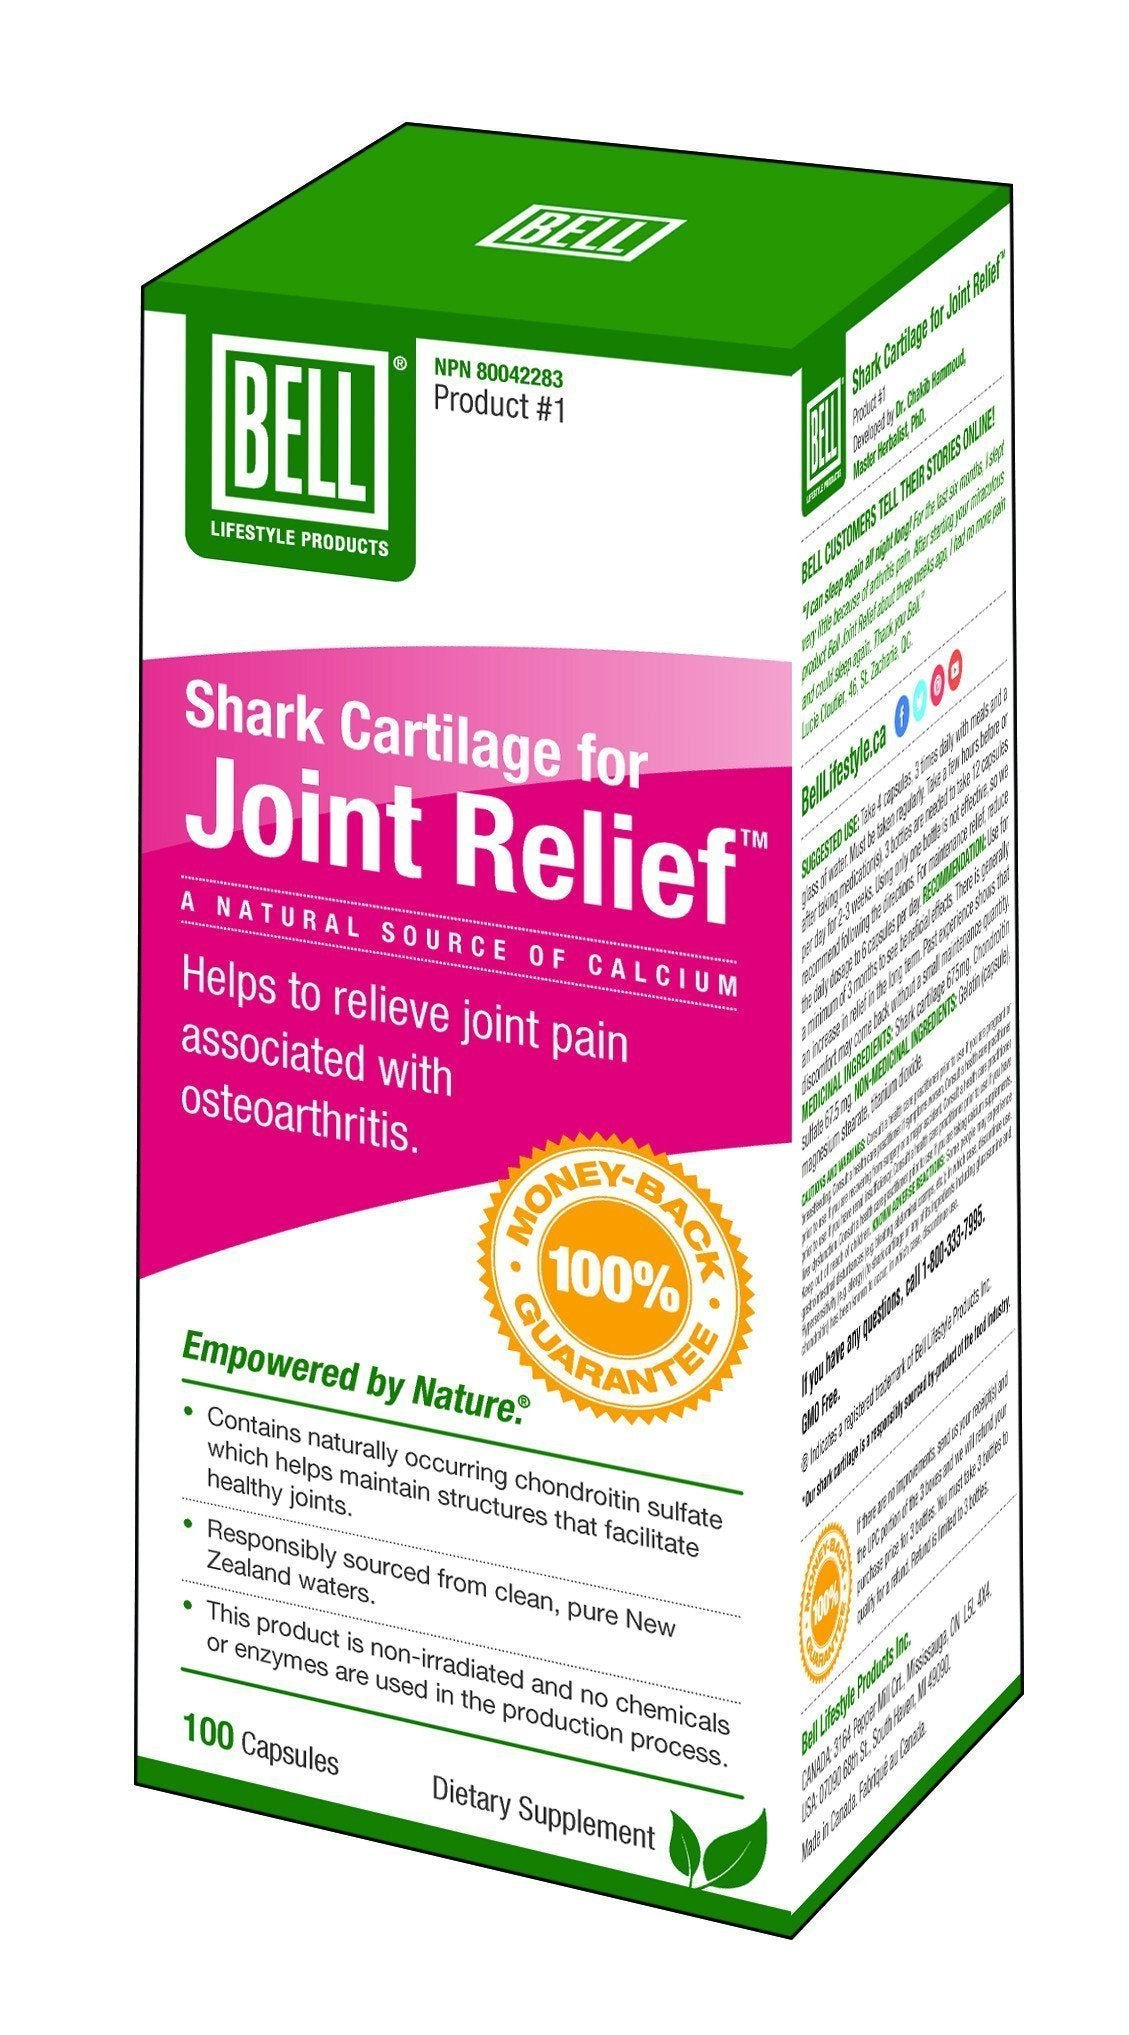 Supplements & Vitamins - Bell - Shark Cartilage, 100 Caps